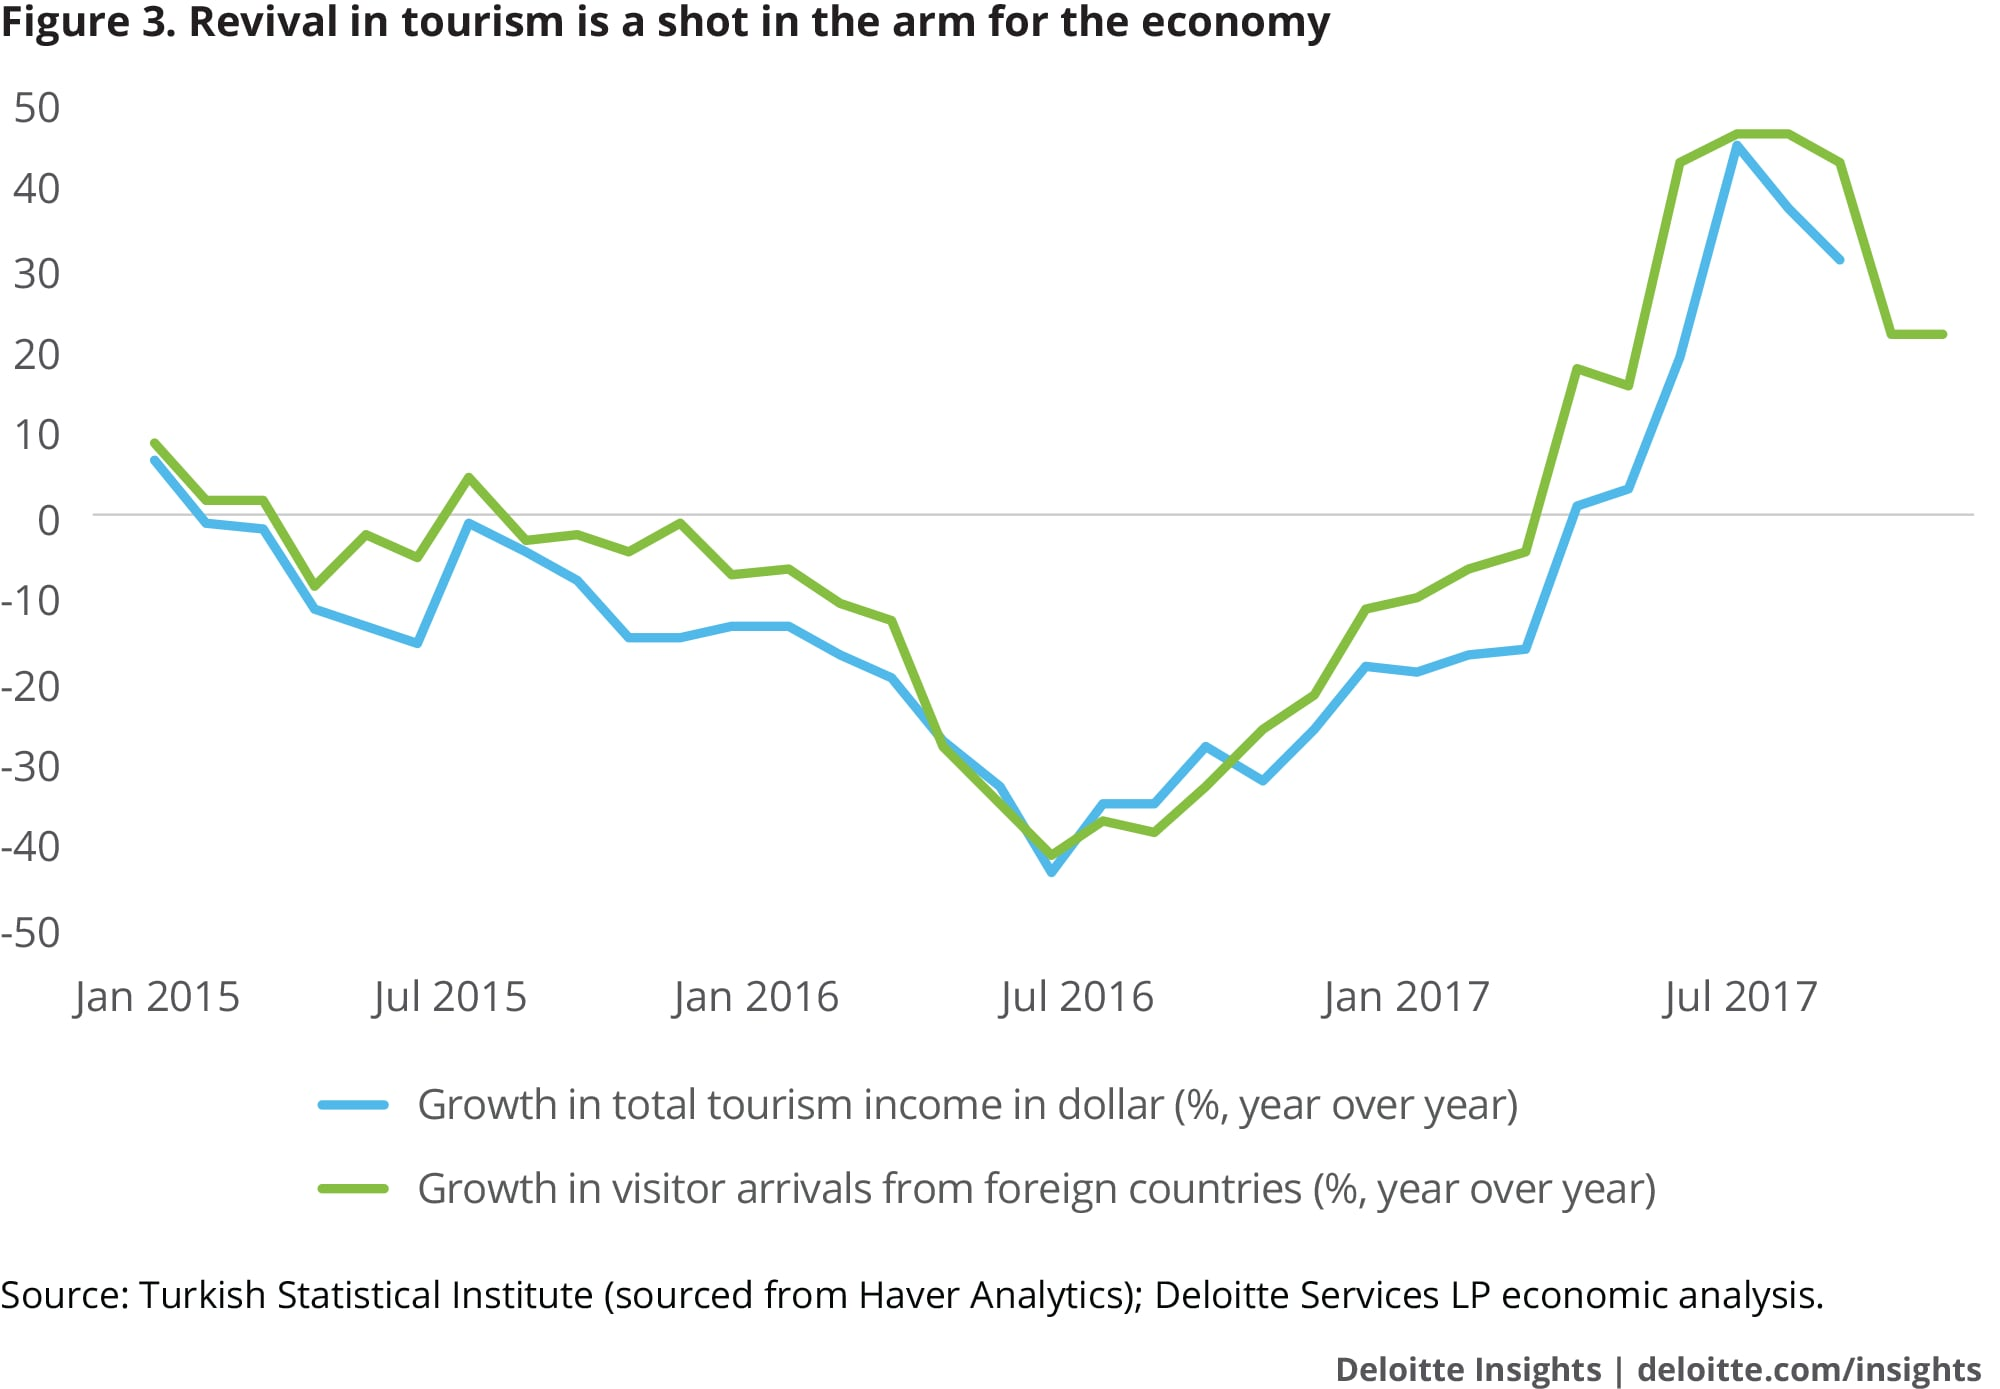 Revival in tourism is a shot in the arm for the economy